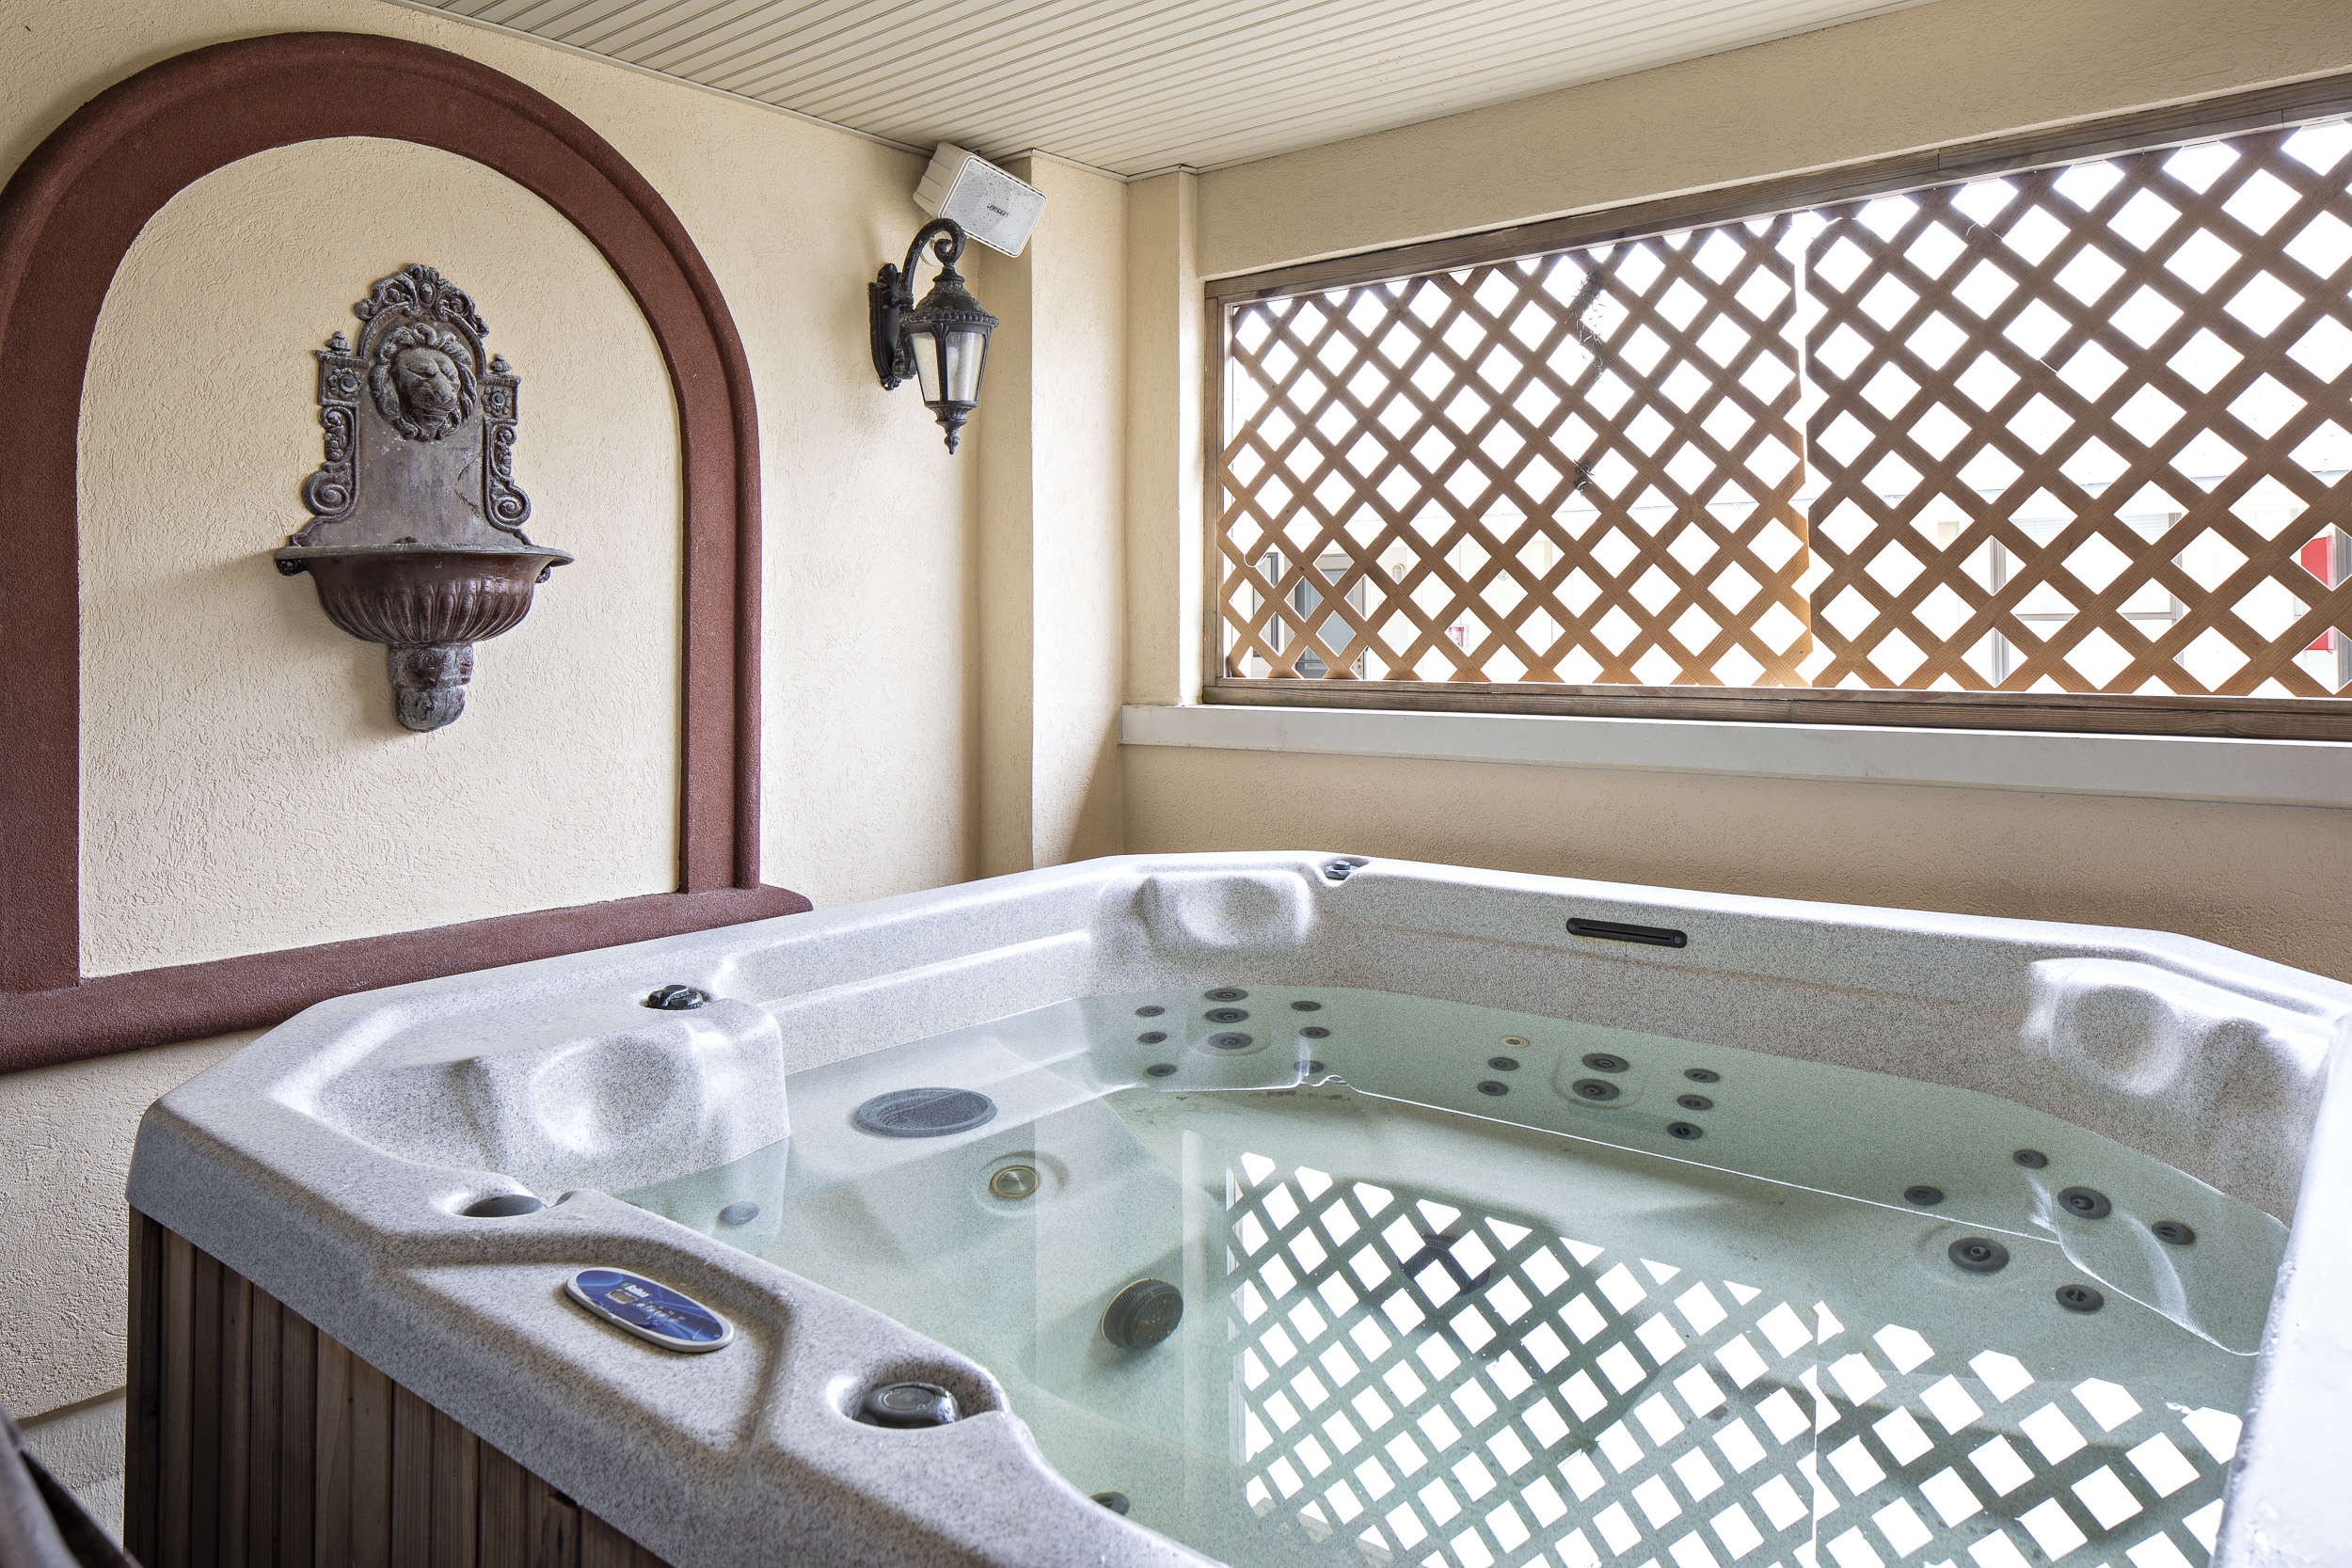 airbnb with pool and jacuzzi near me